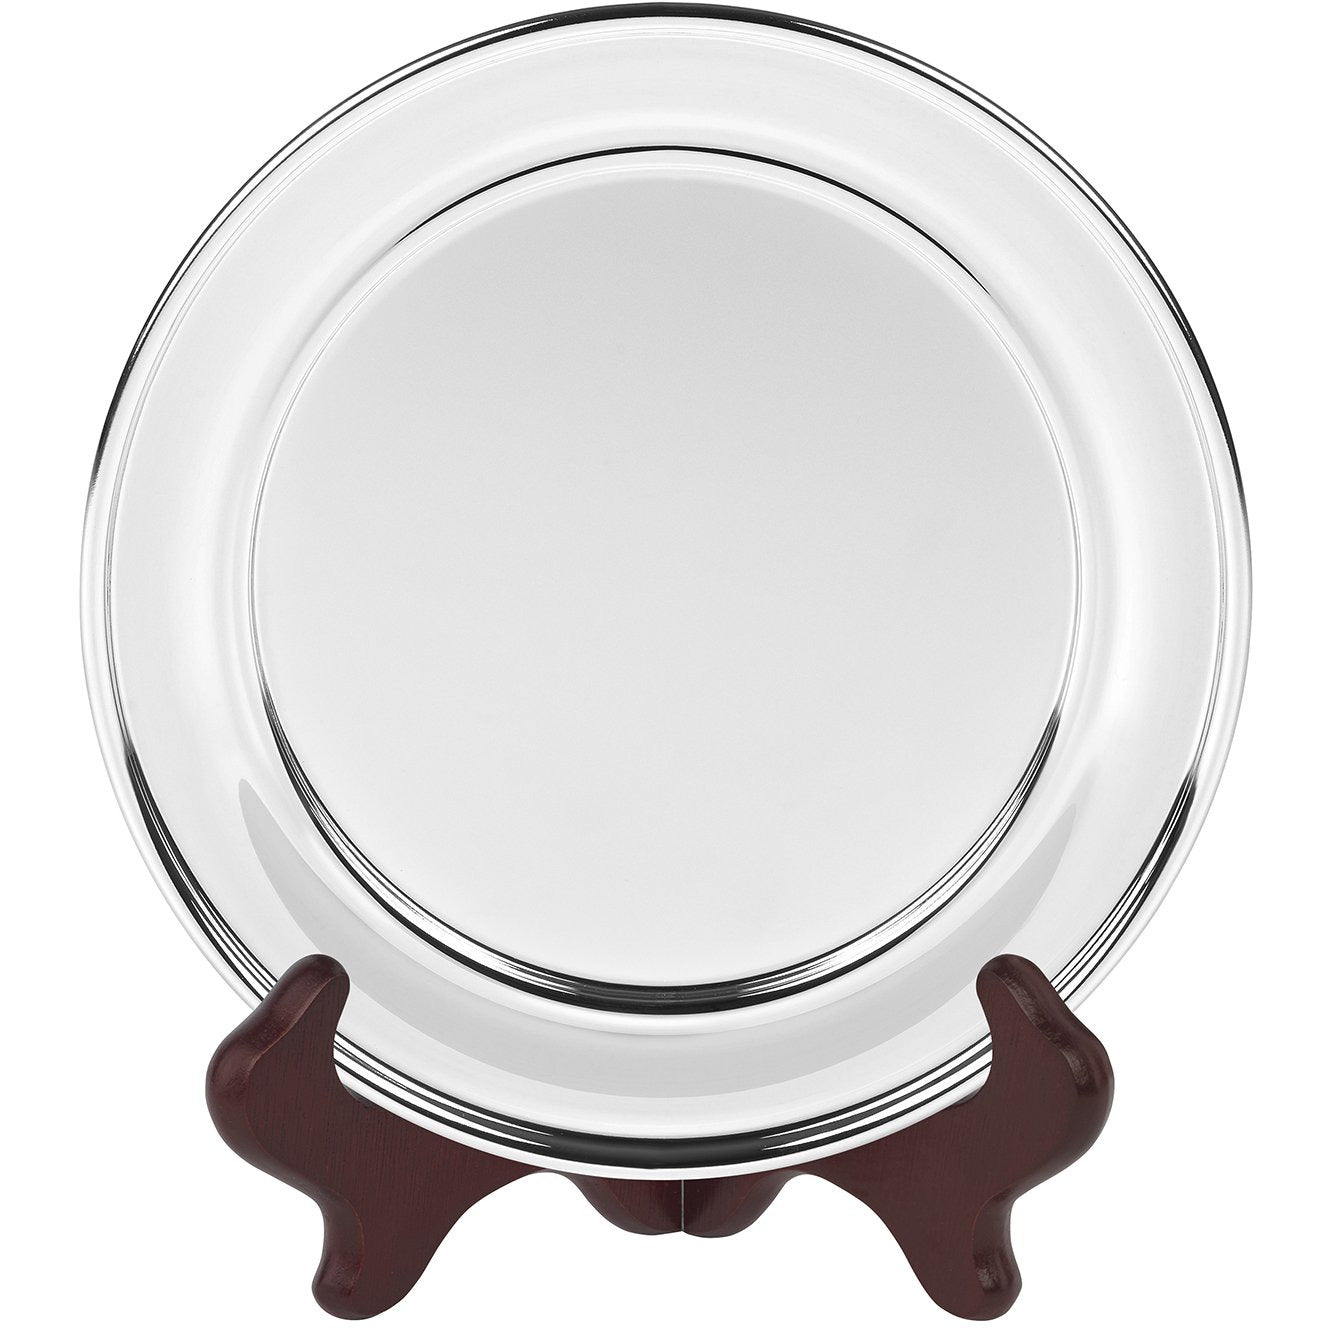 8 INCH SILVER PLATE TROPHY TRAY